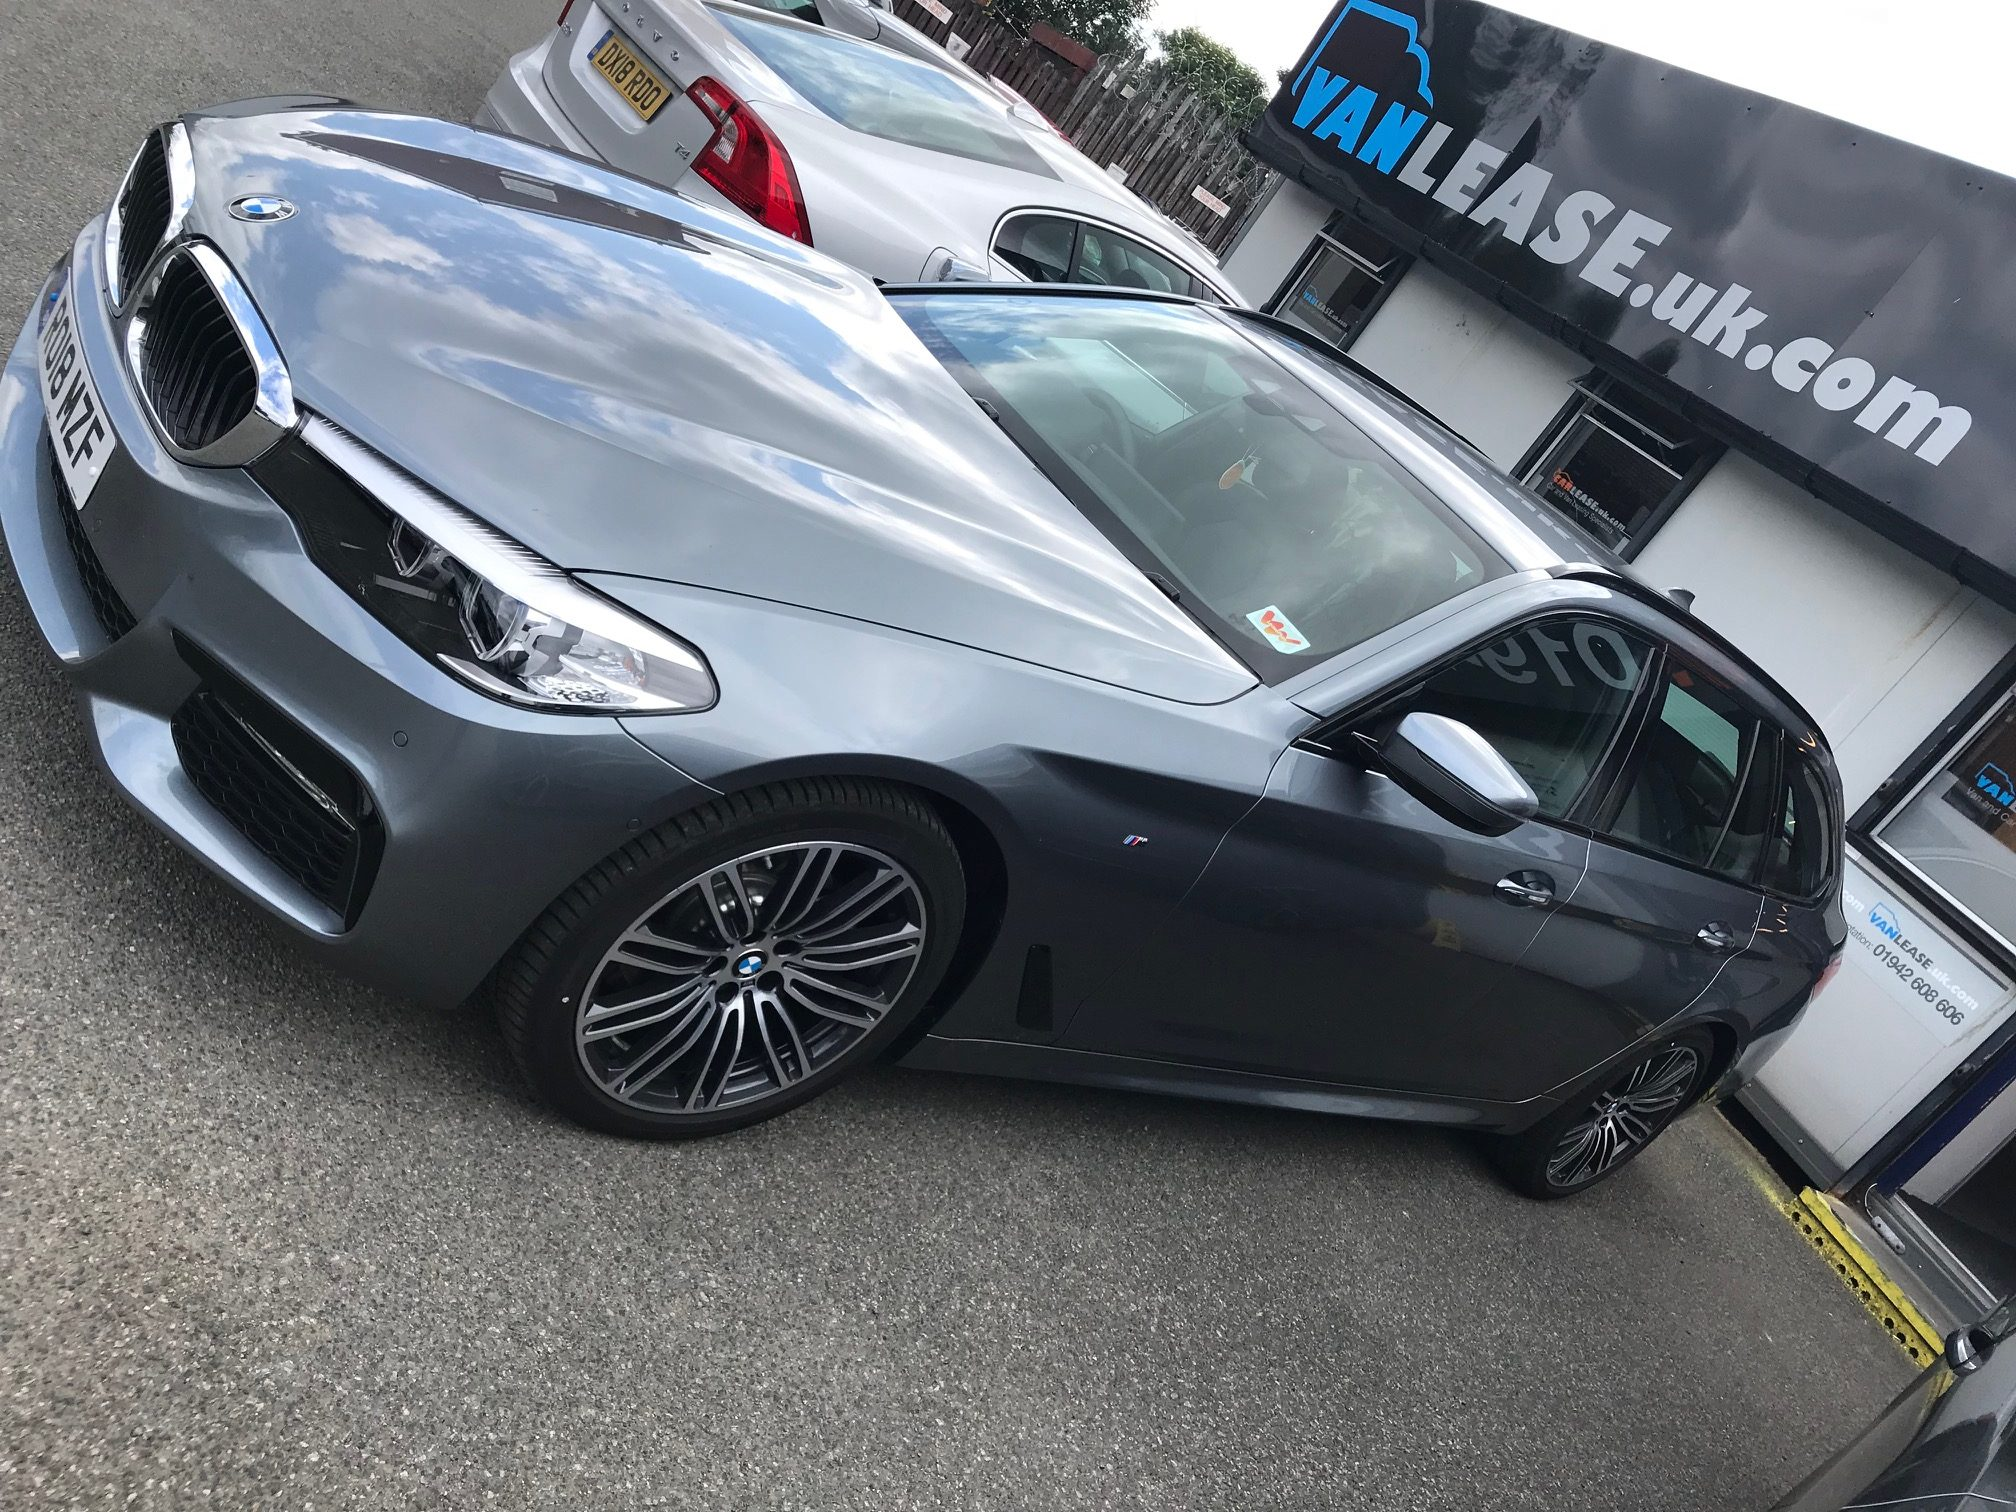 BMW 5 SERIES TOURING 520i M Sport 5dr Auto (Petrol) Car Leasing Information